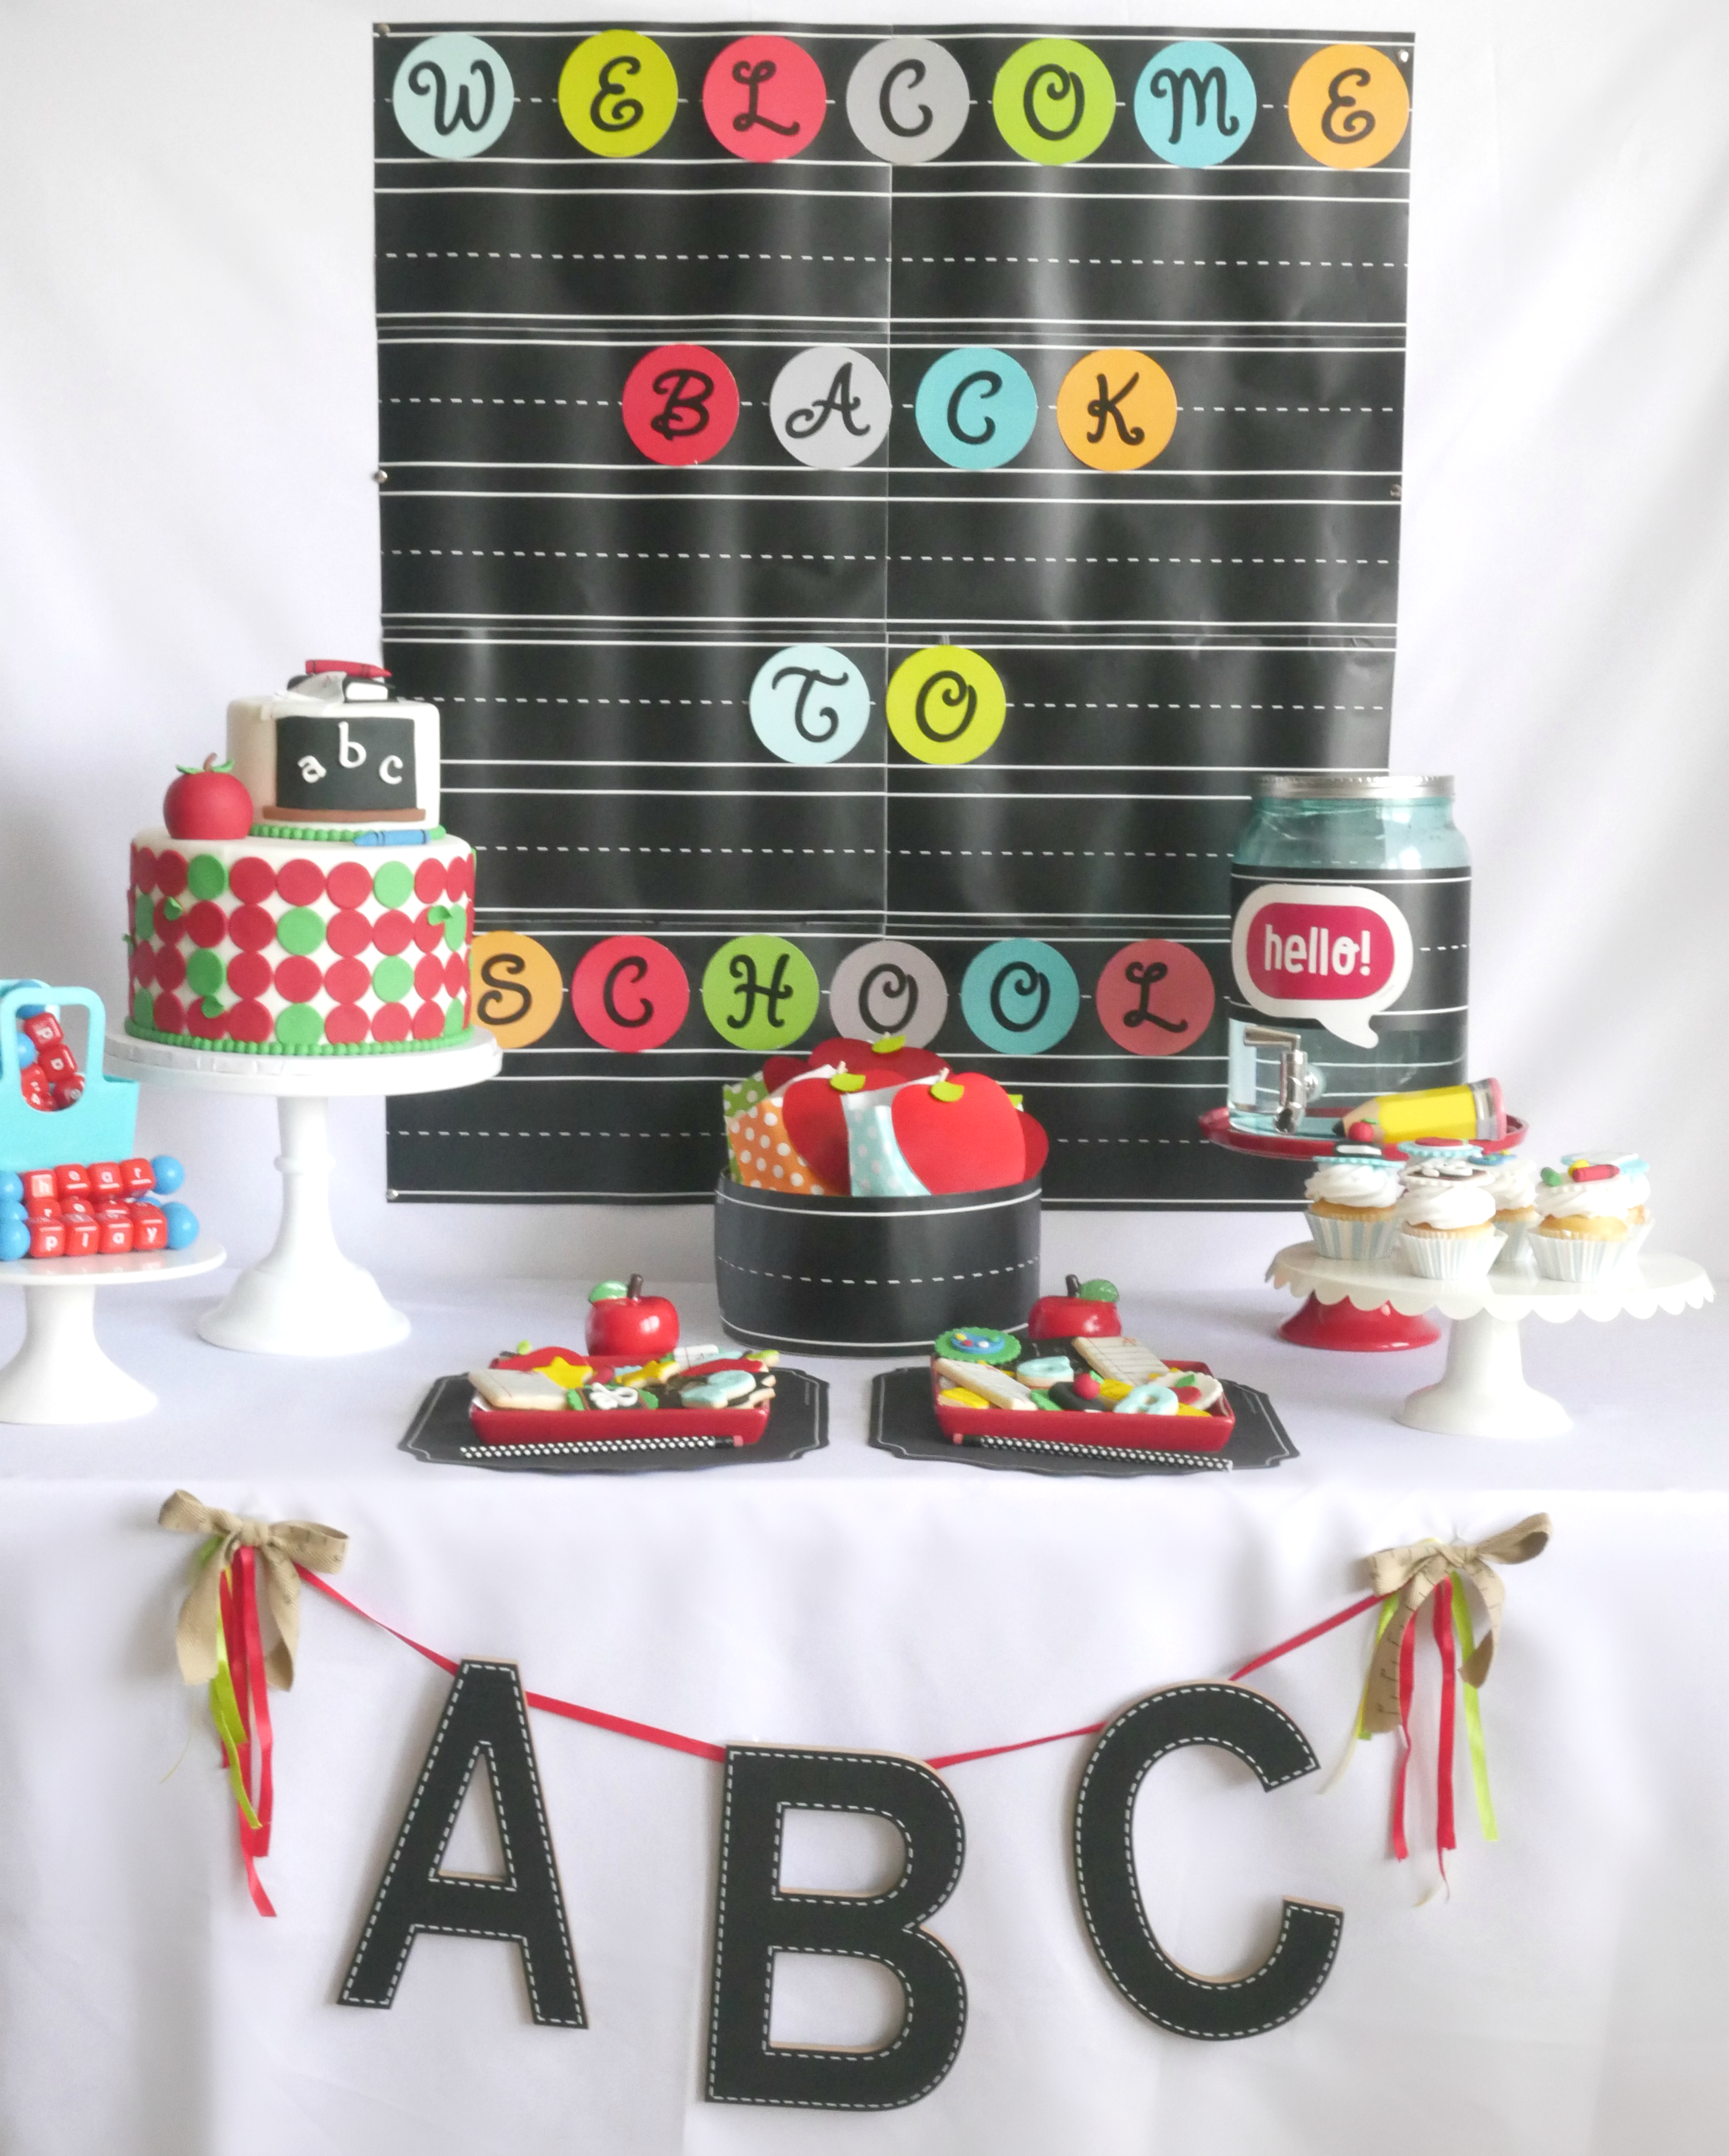 Surprise your kids with a Back to School Party they will LOVE. This one features modern polka dots mixed with a chalkboard theme. Wait until you see all the cute party decorations and desserts - see it all on Mint Event Design www.minteventdesign.com #backtoschool #backtoschoolideas #kidsparty #kidspartyideas #kidsparties